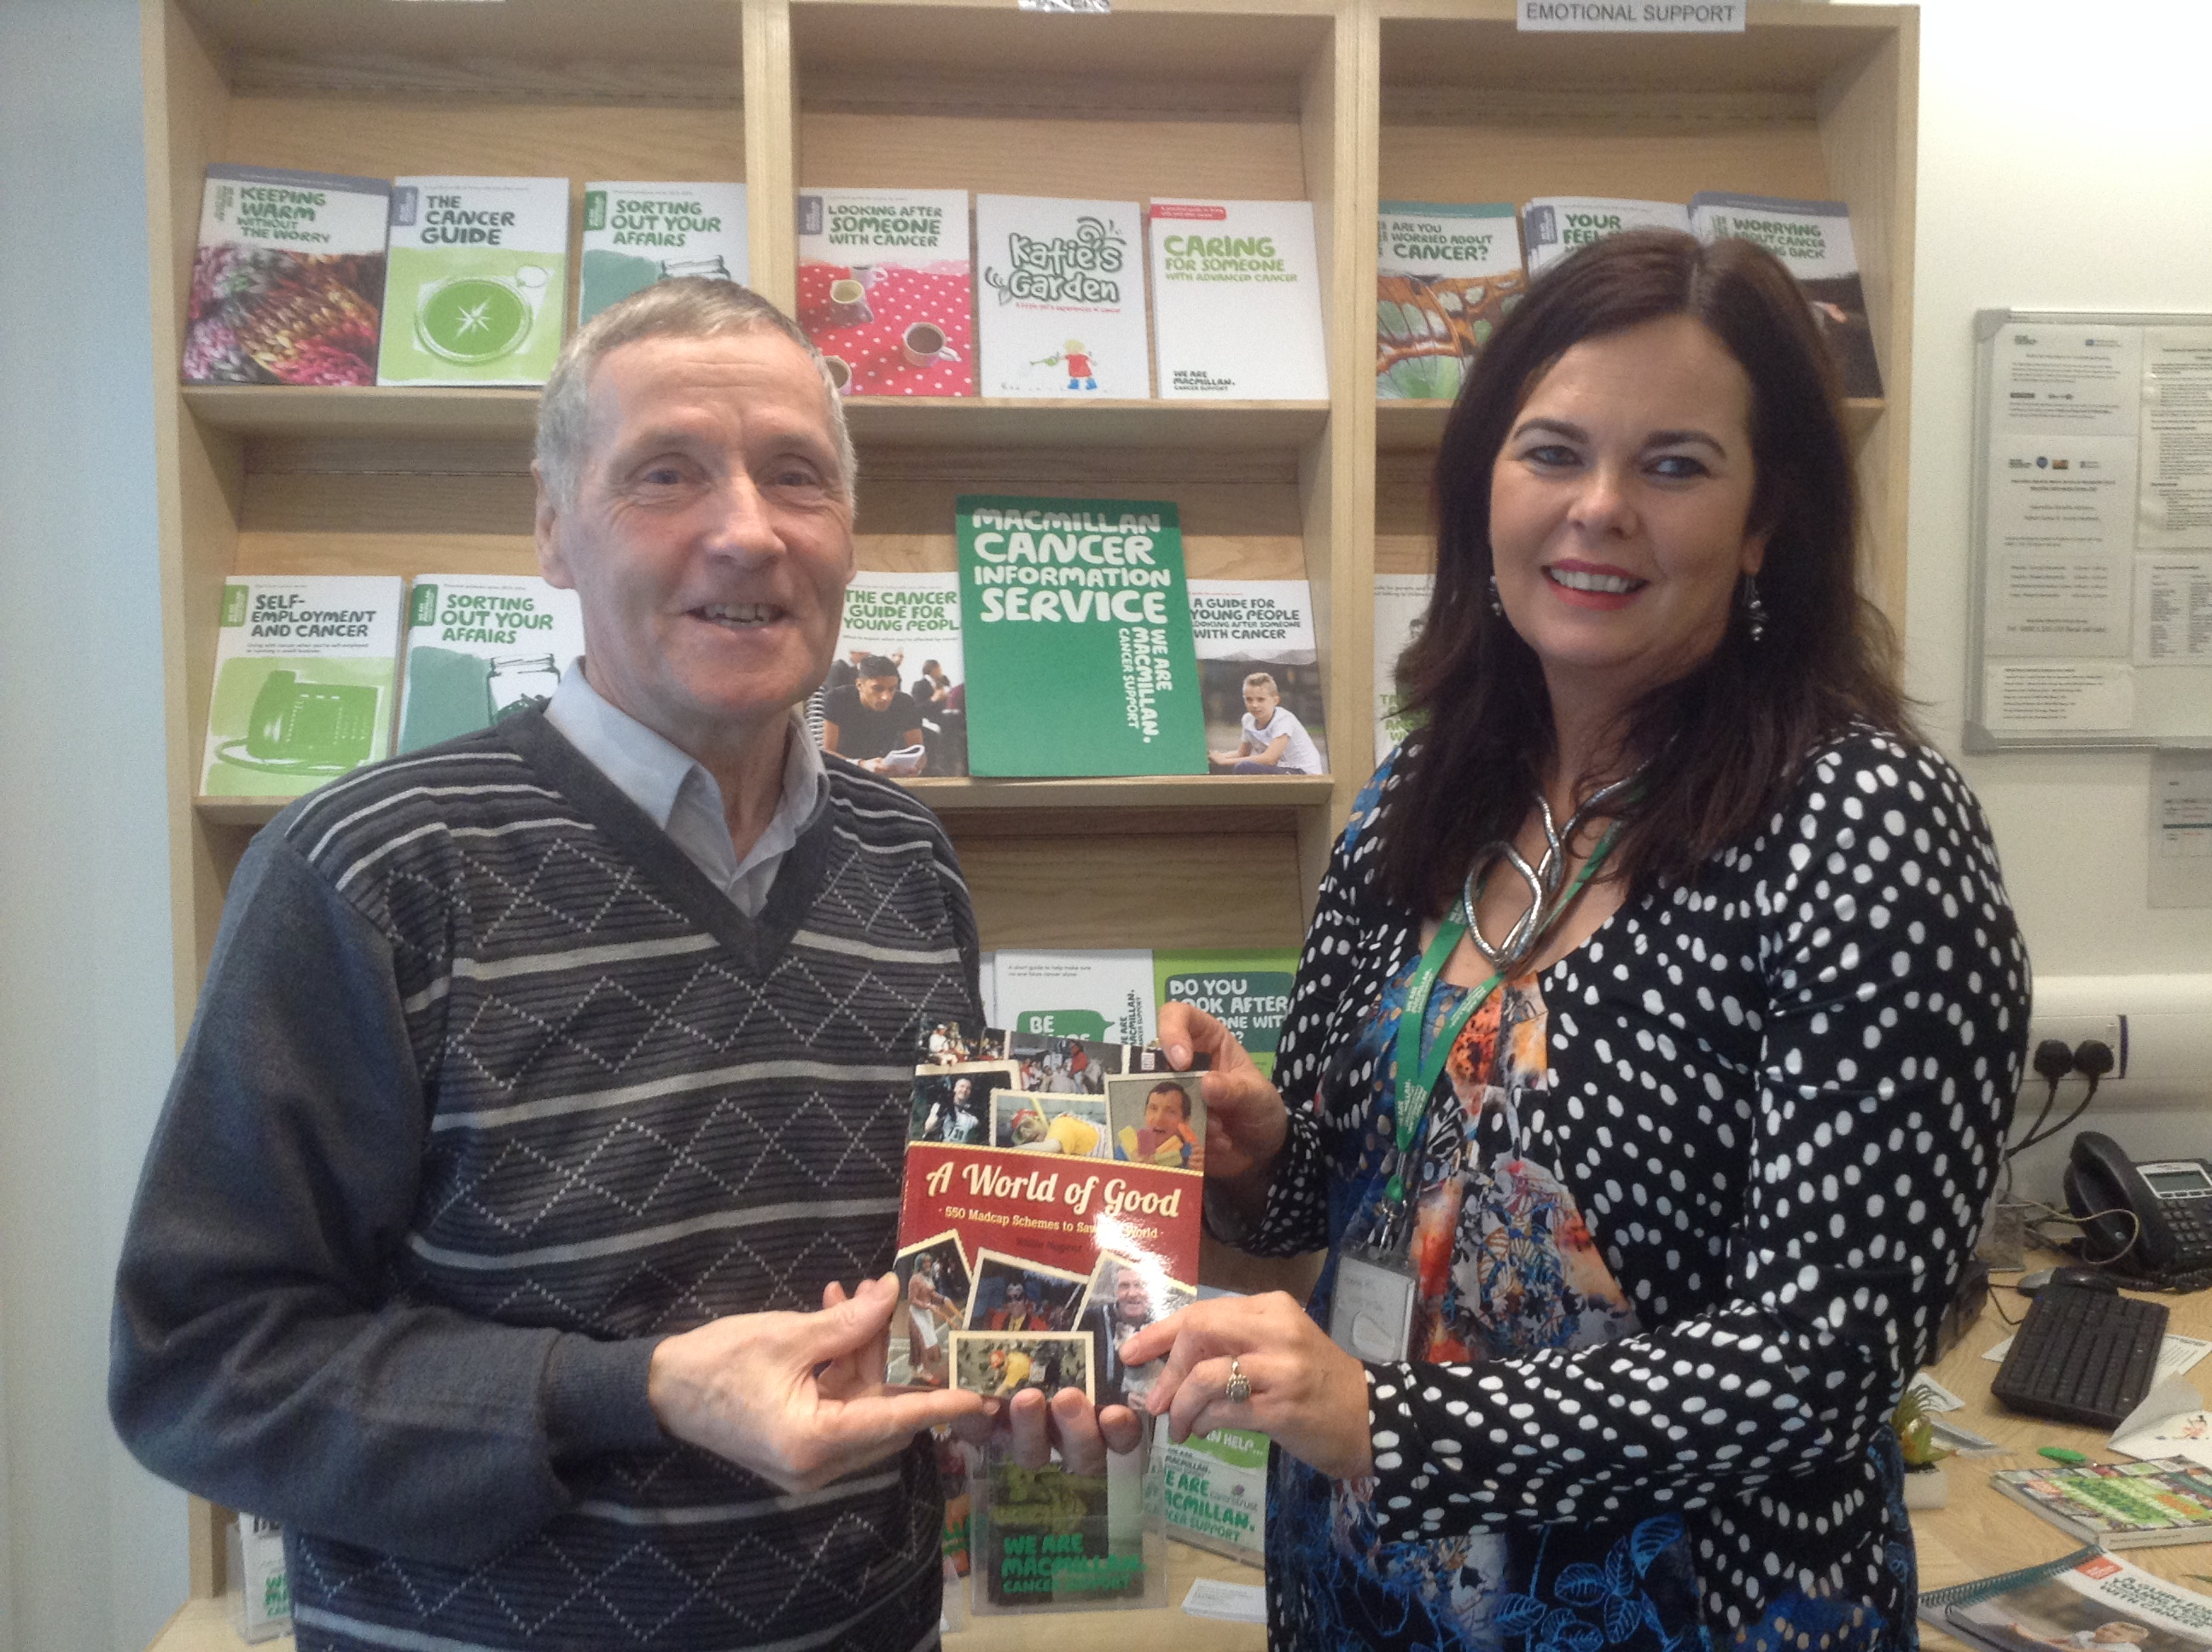 Willie Presents £300 to Sharon Clarke of Macmillan cancer support from the sale of the first 60 books.